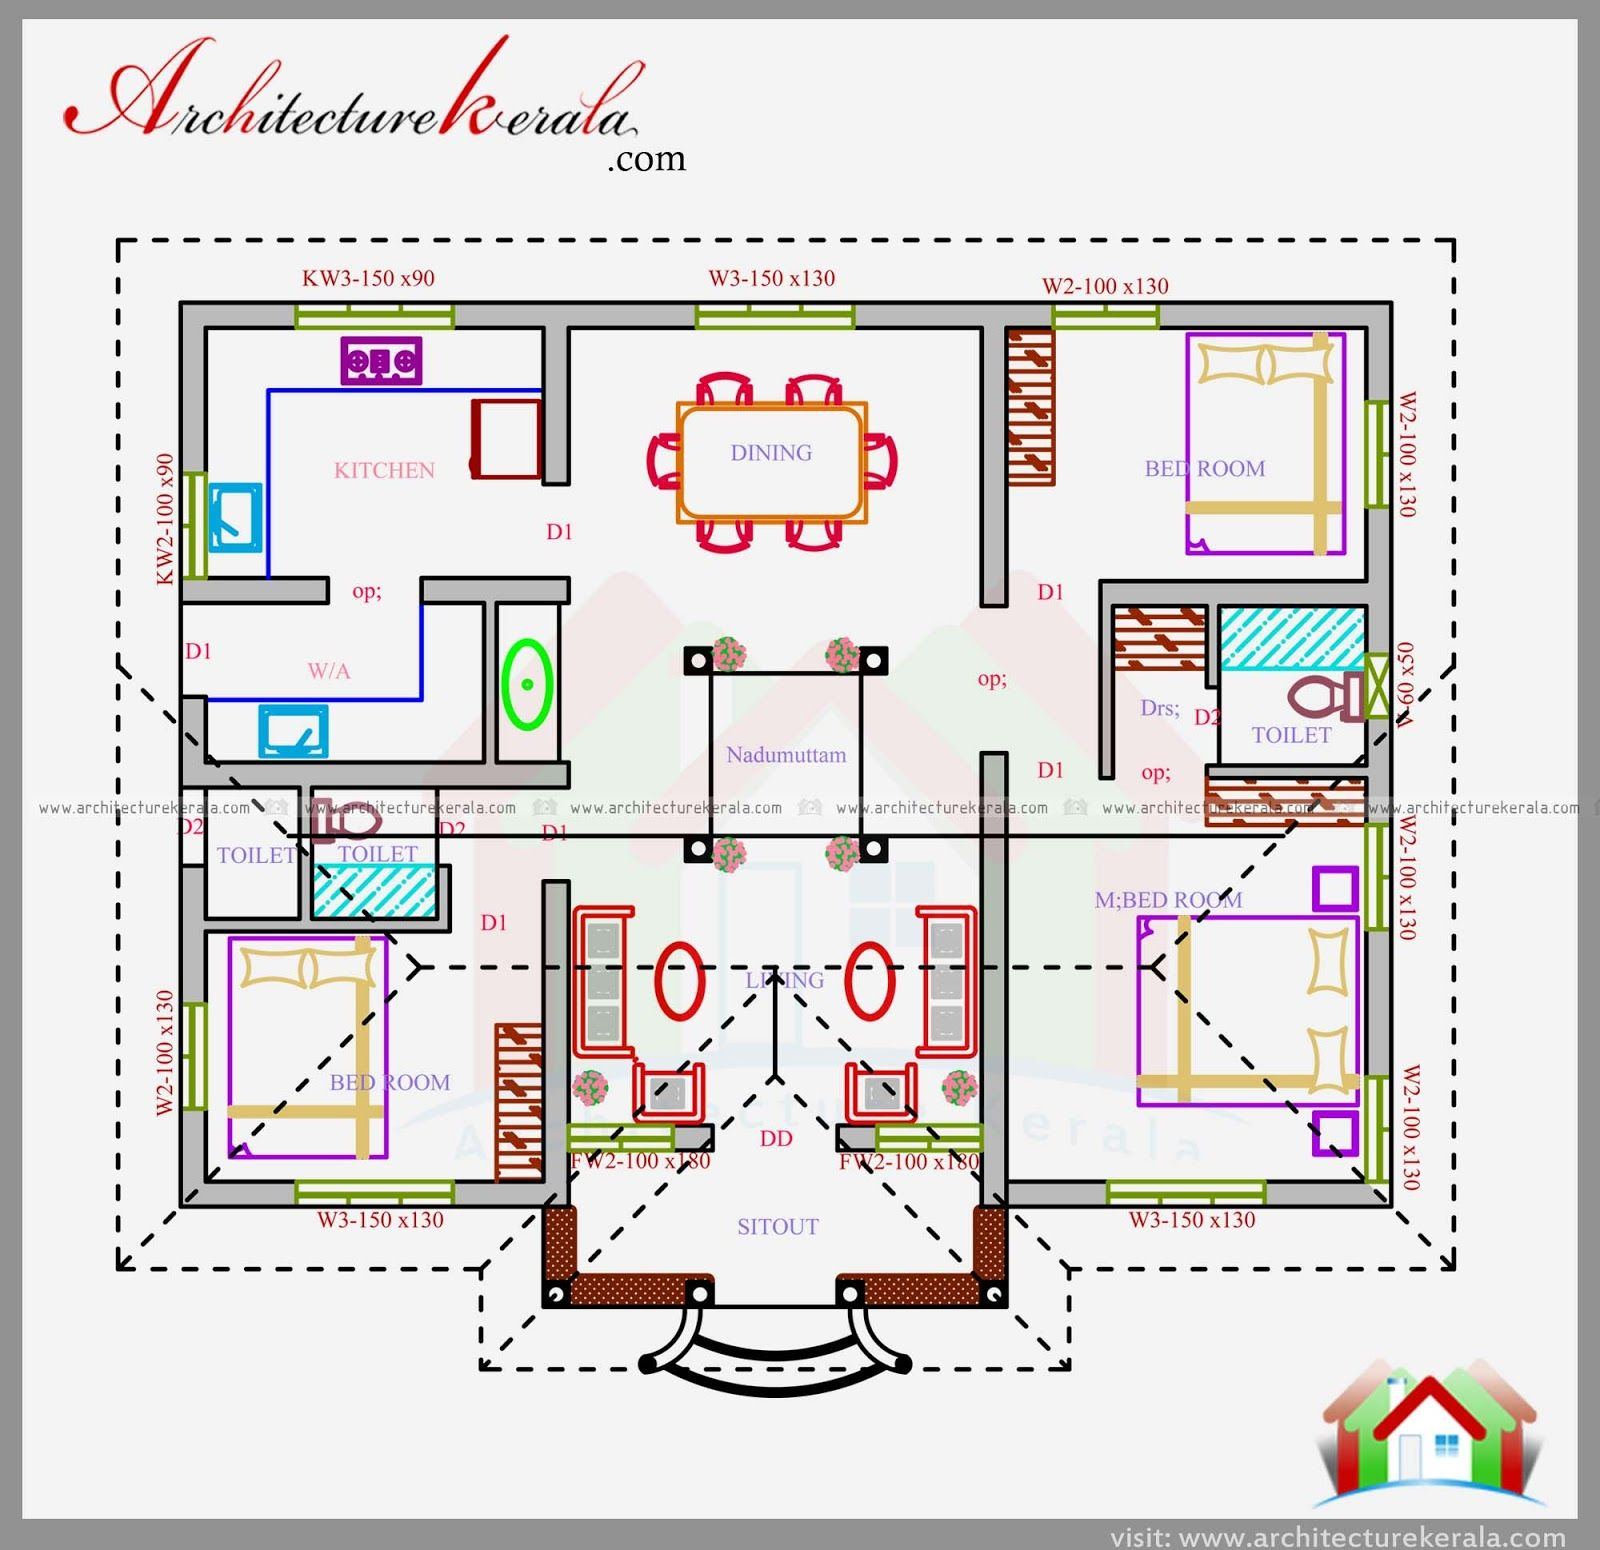 Three bedrooms in 1200 square feet kerala house plan 3 bedroom kerala house plans